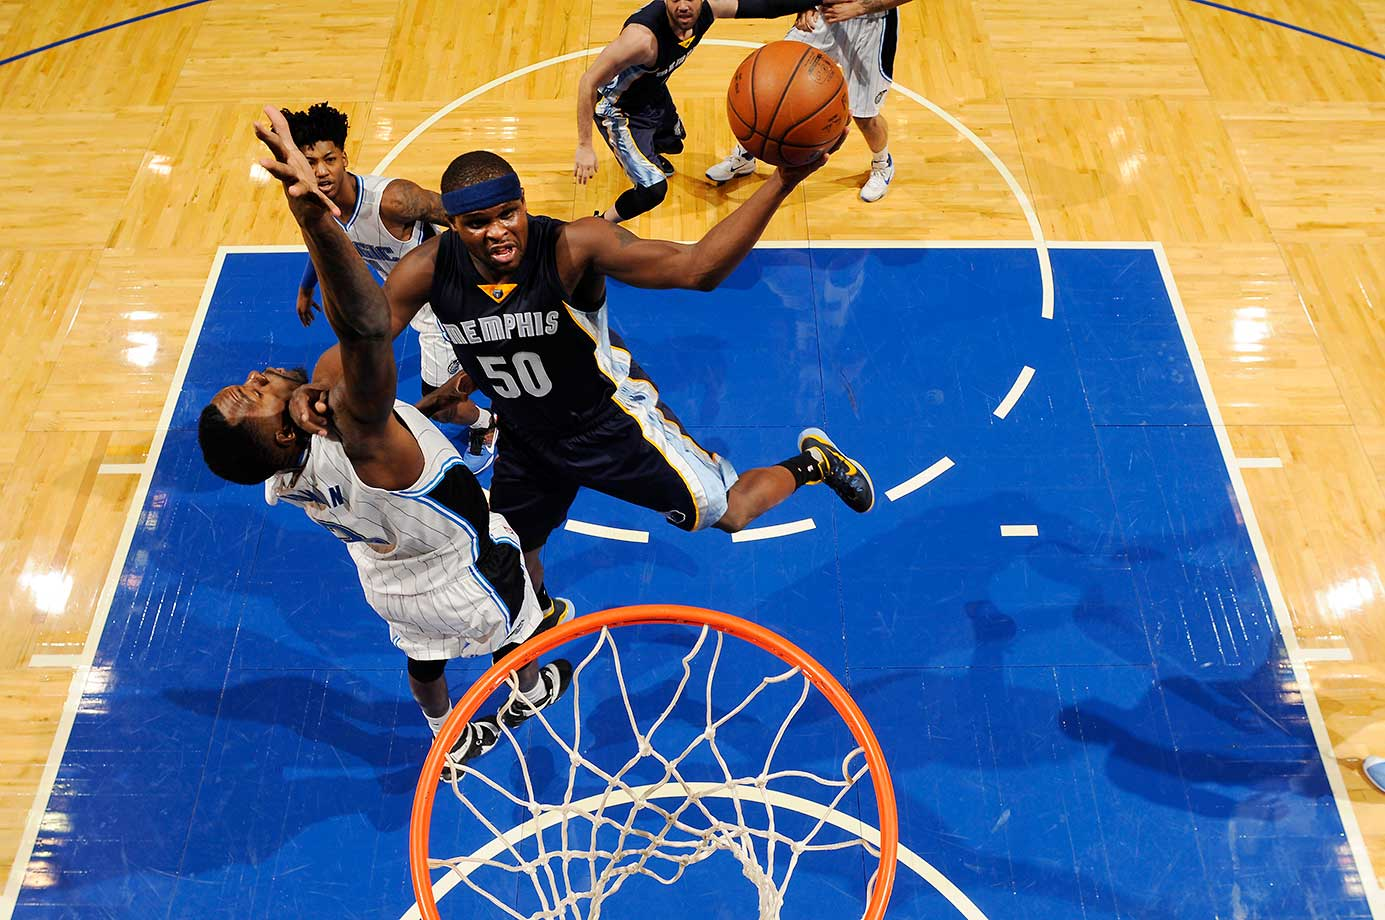 Zach Randolph of Memphis shoots the ball against the Orlando Magic.